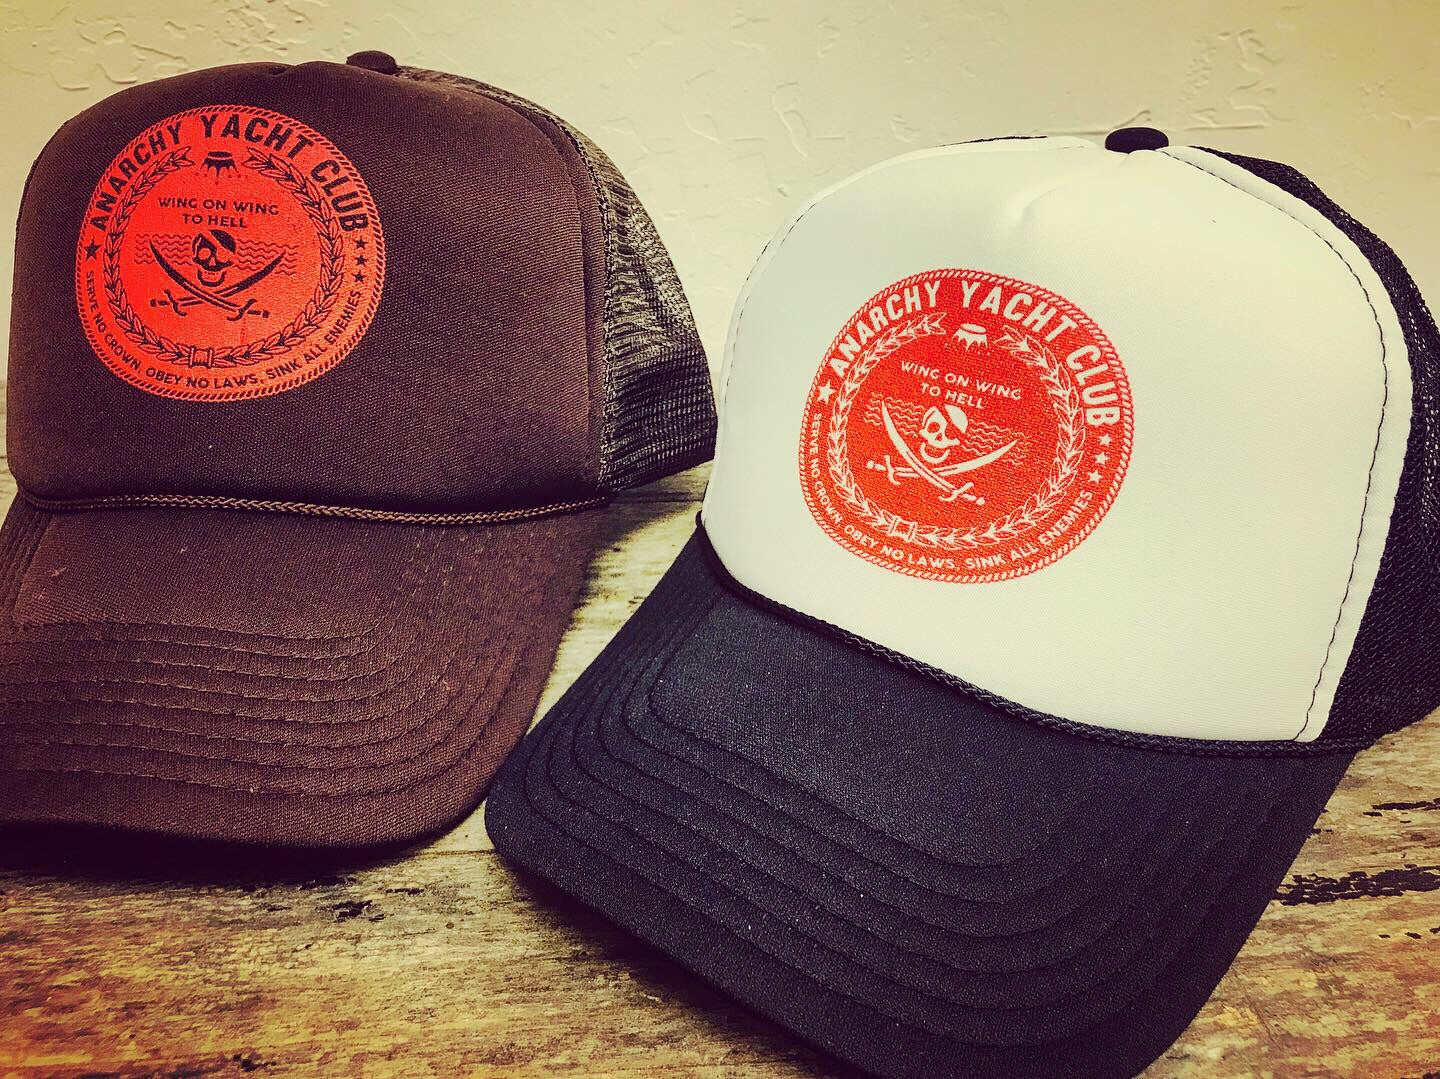 Anarchy Yacht Club trucker hat